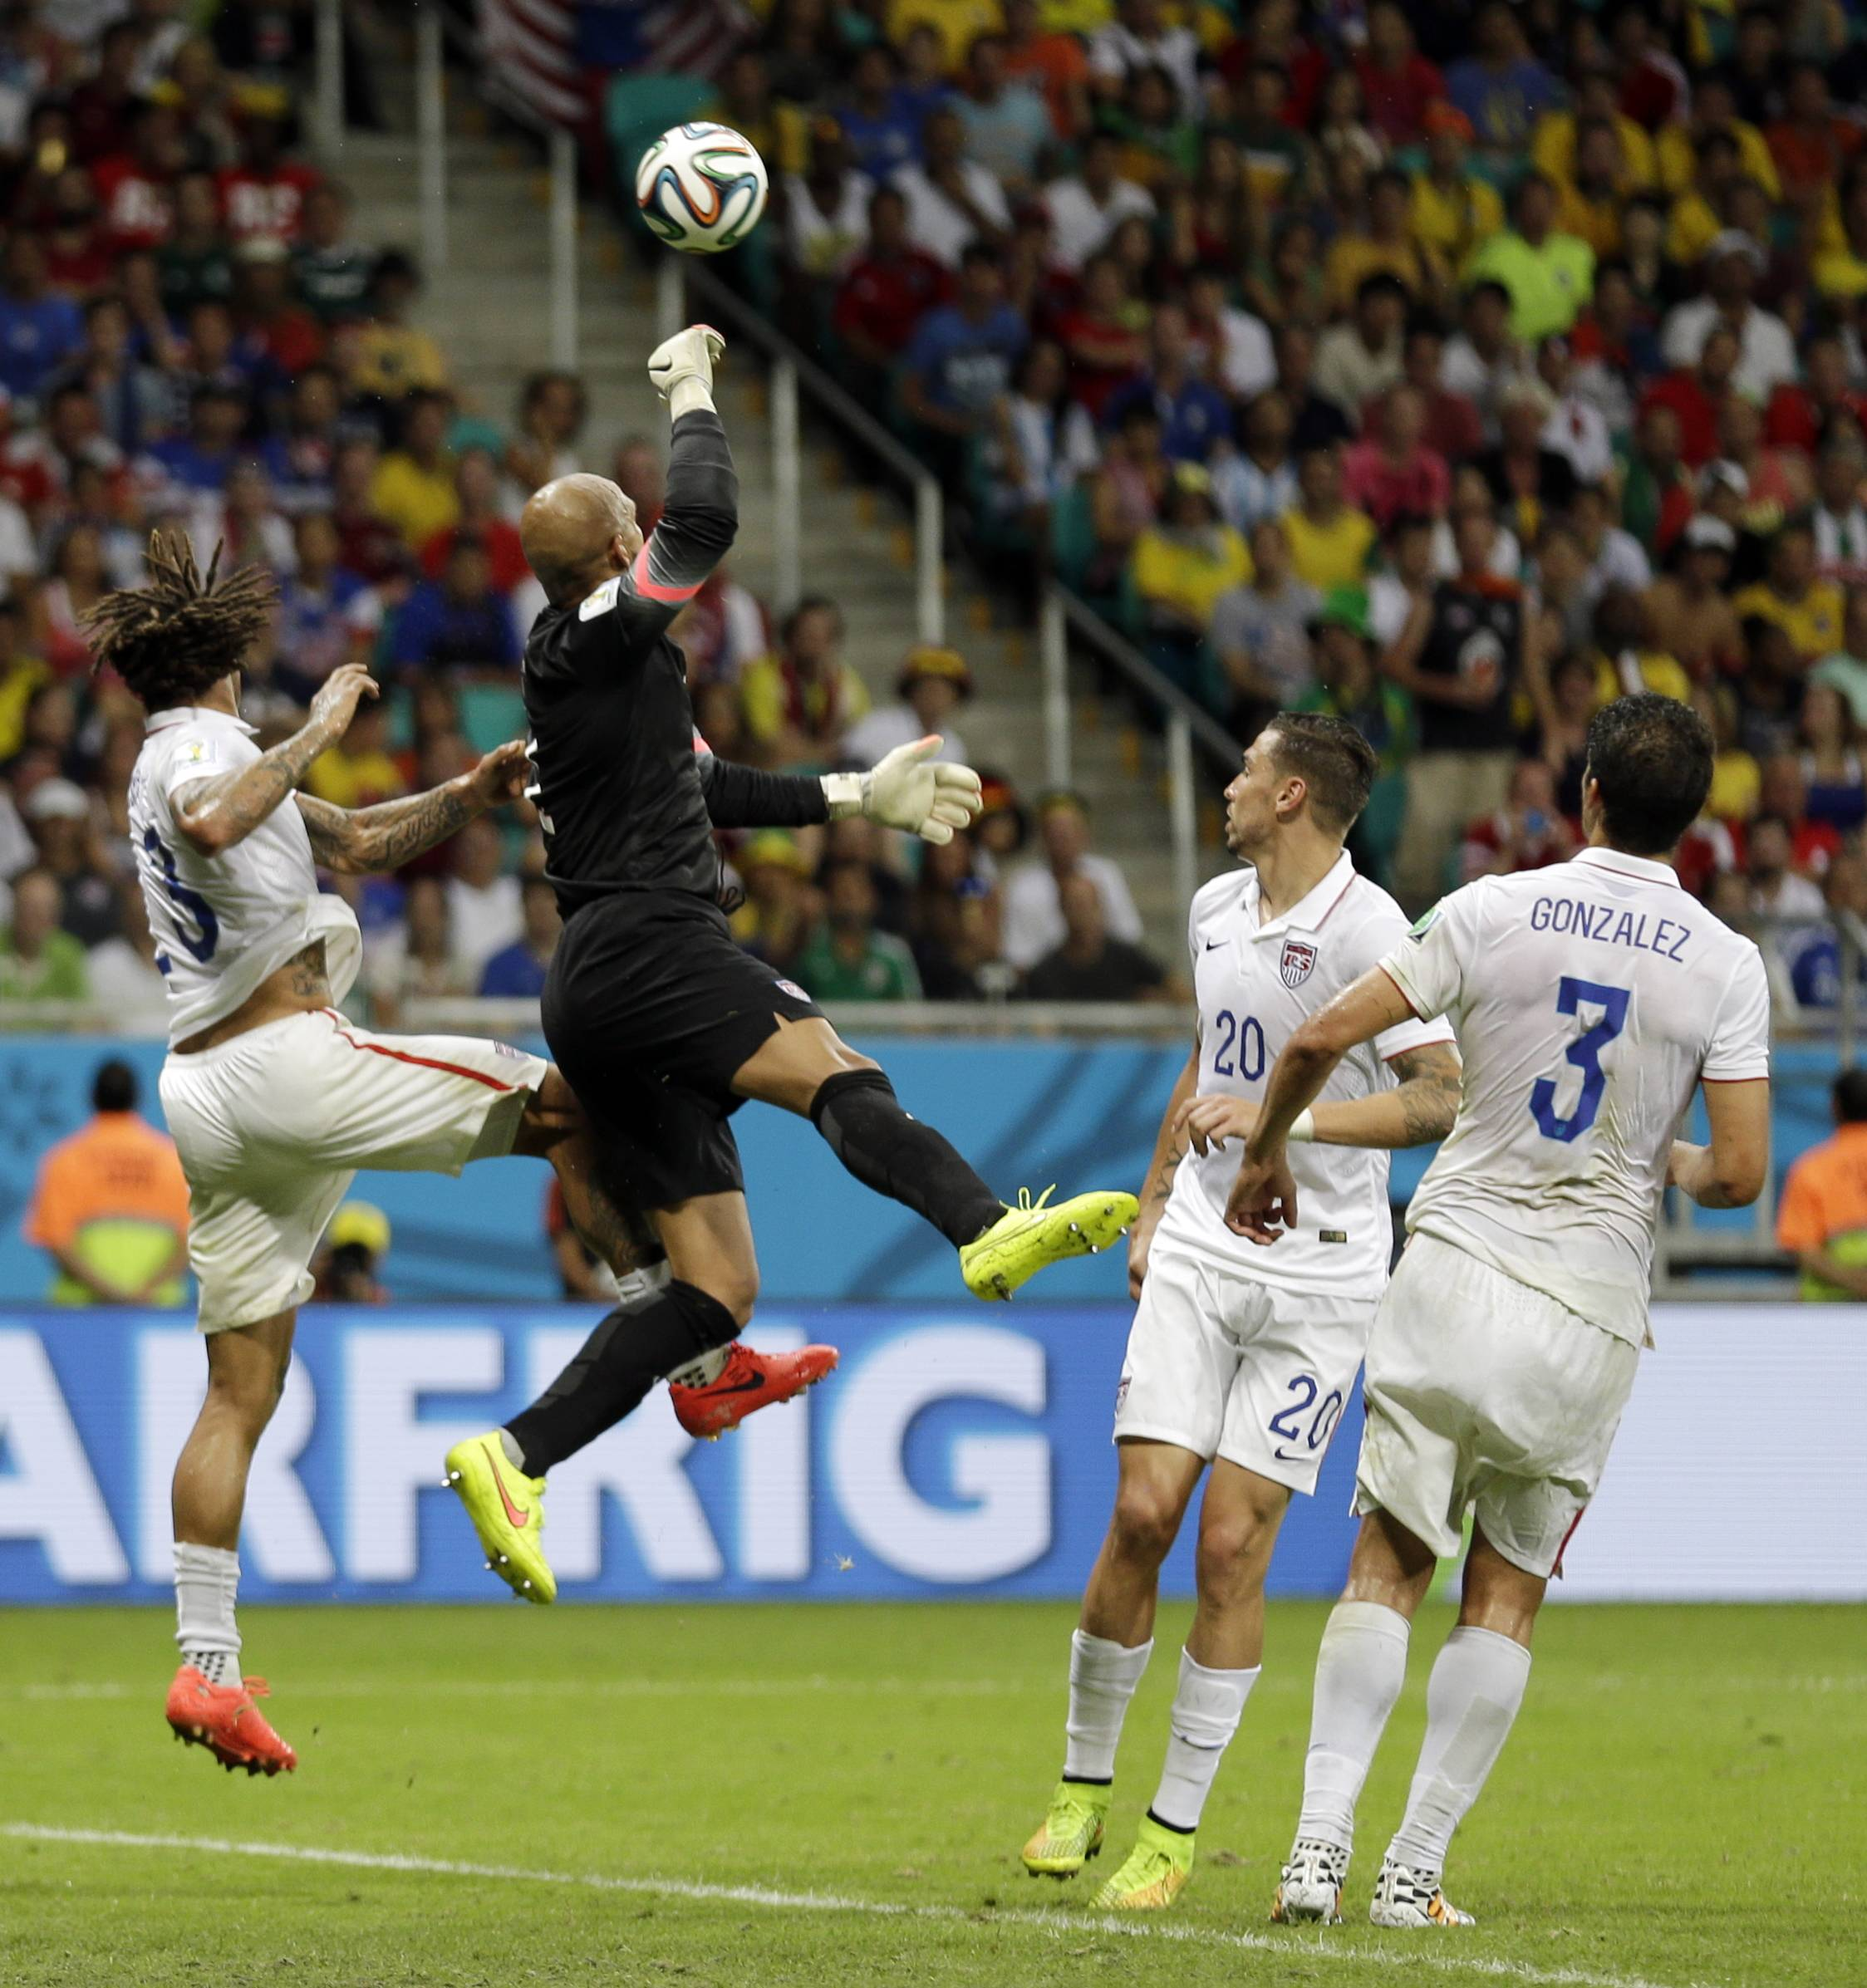 United States' goalkeeper Tim Howard leaps in between his teammates to clear the ball during the World Cup round of 16 soccer match between Belgium and the USA at the Arena Fonte Nova in Salvador, Brazil, Tuesday, July 1, 2014. (AP Photo/Natacha Pisarenko)